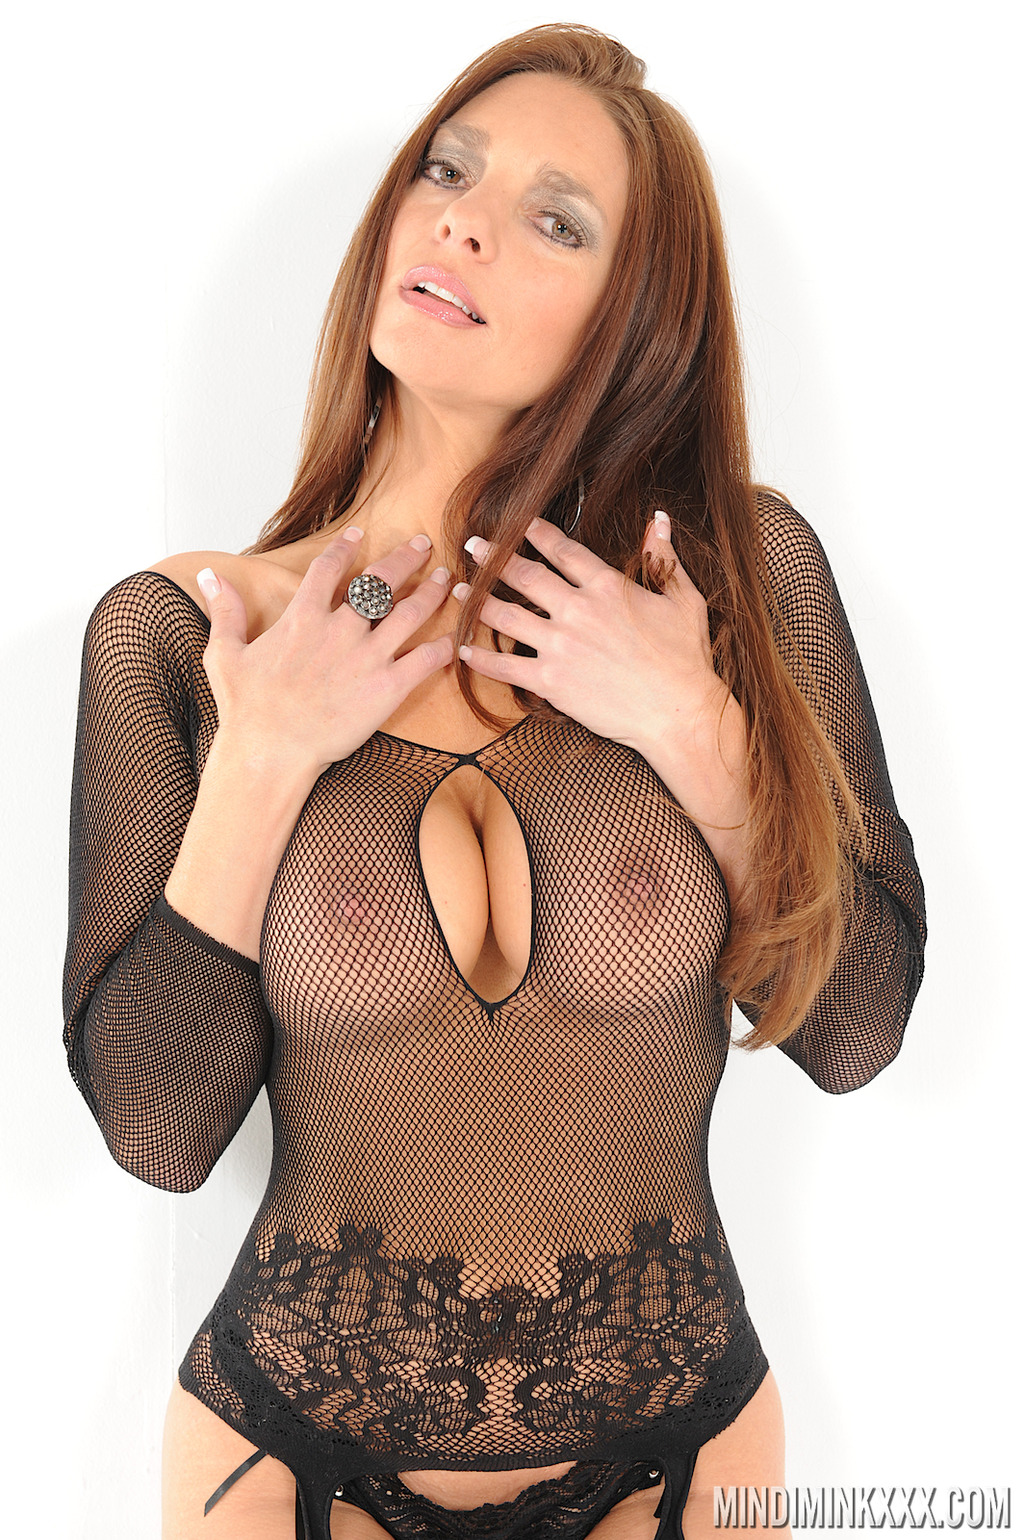 PHOTO | 01 14 - BUSTY MILF, Mindi Mink, Shows off those Tits that Aged like a Fine Wine!